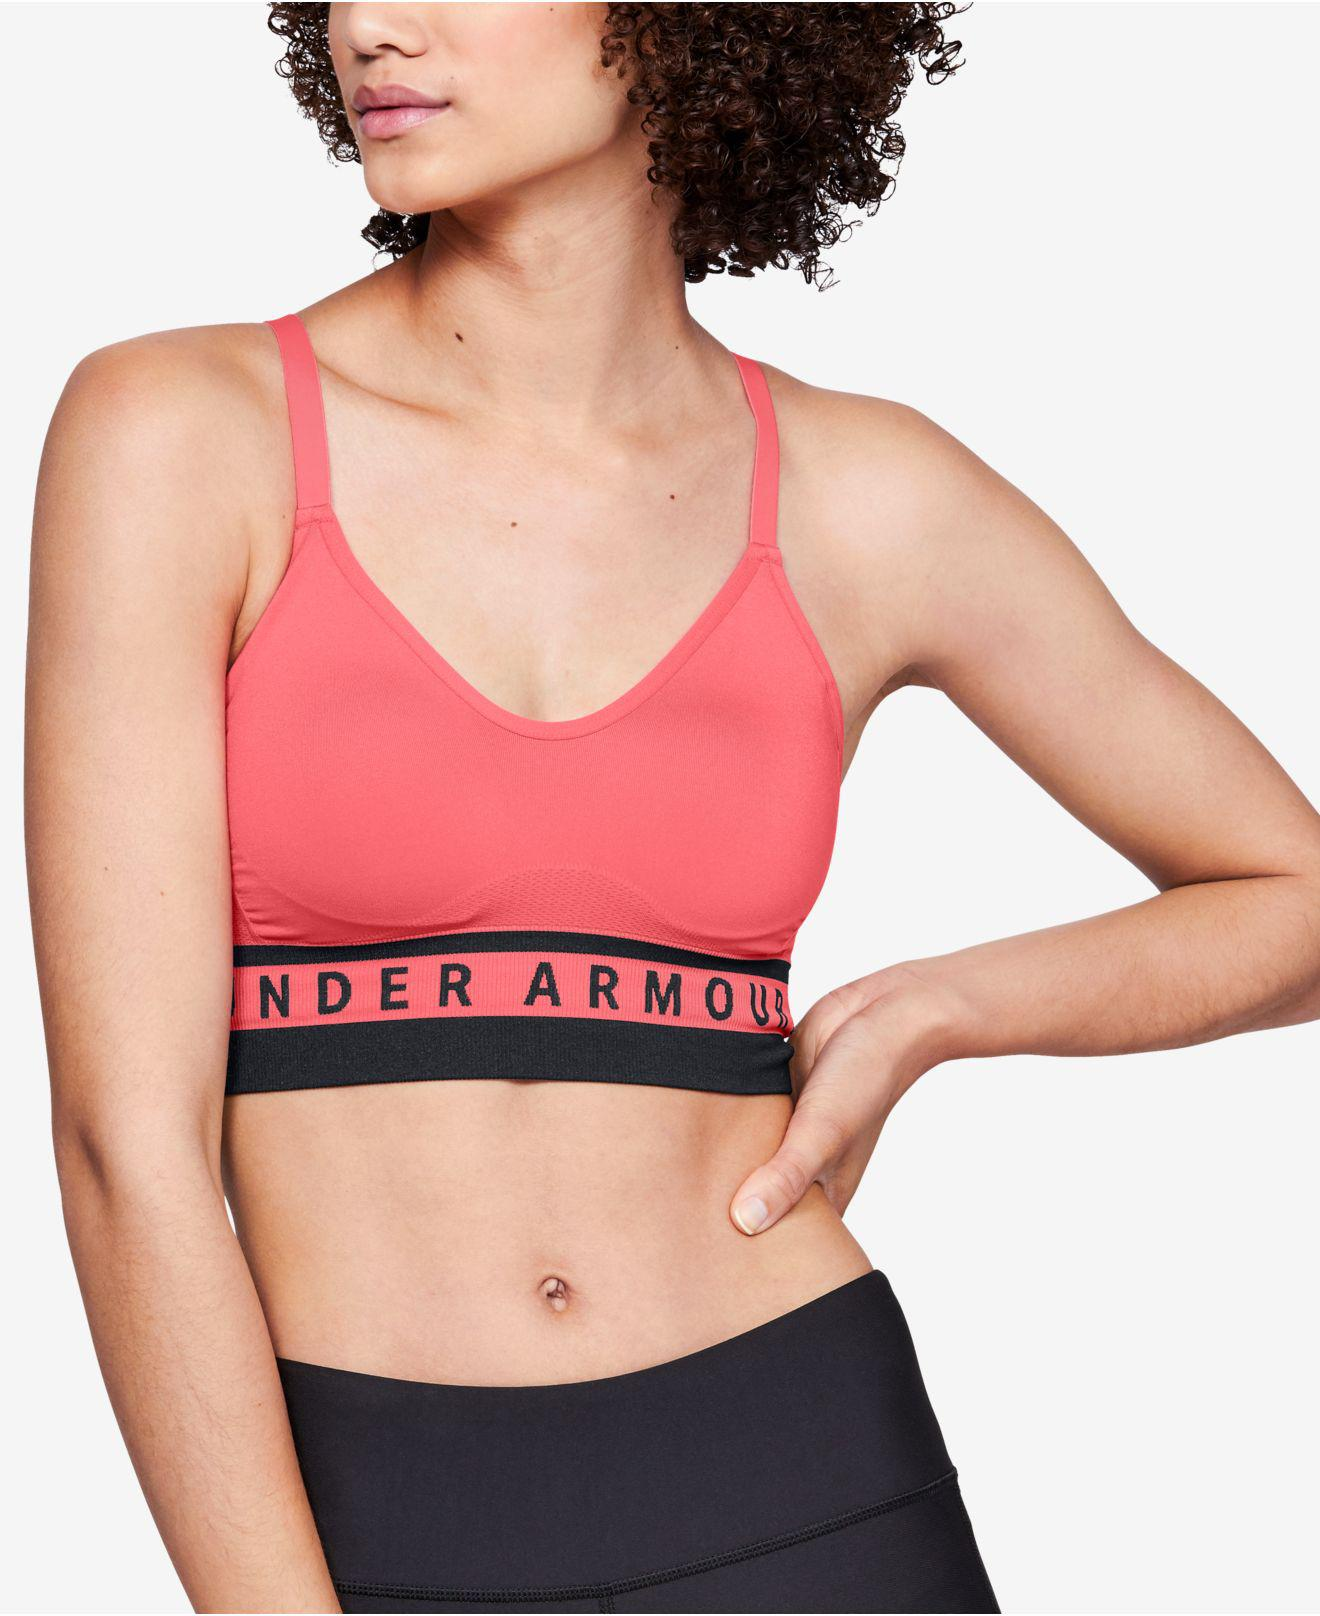 80bc7d350c8f2 Lyst - Under Armour Seamless Strappy-back Low-impact Sports Bra ...